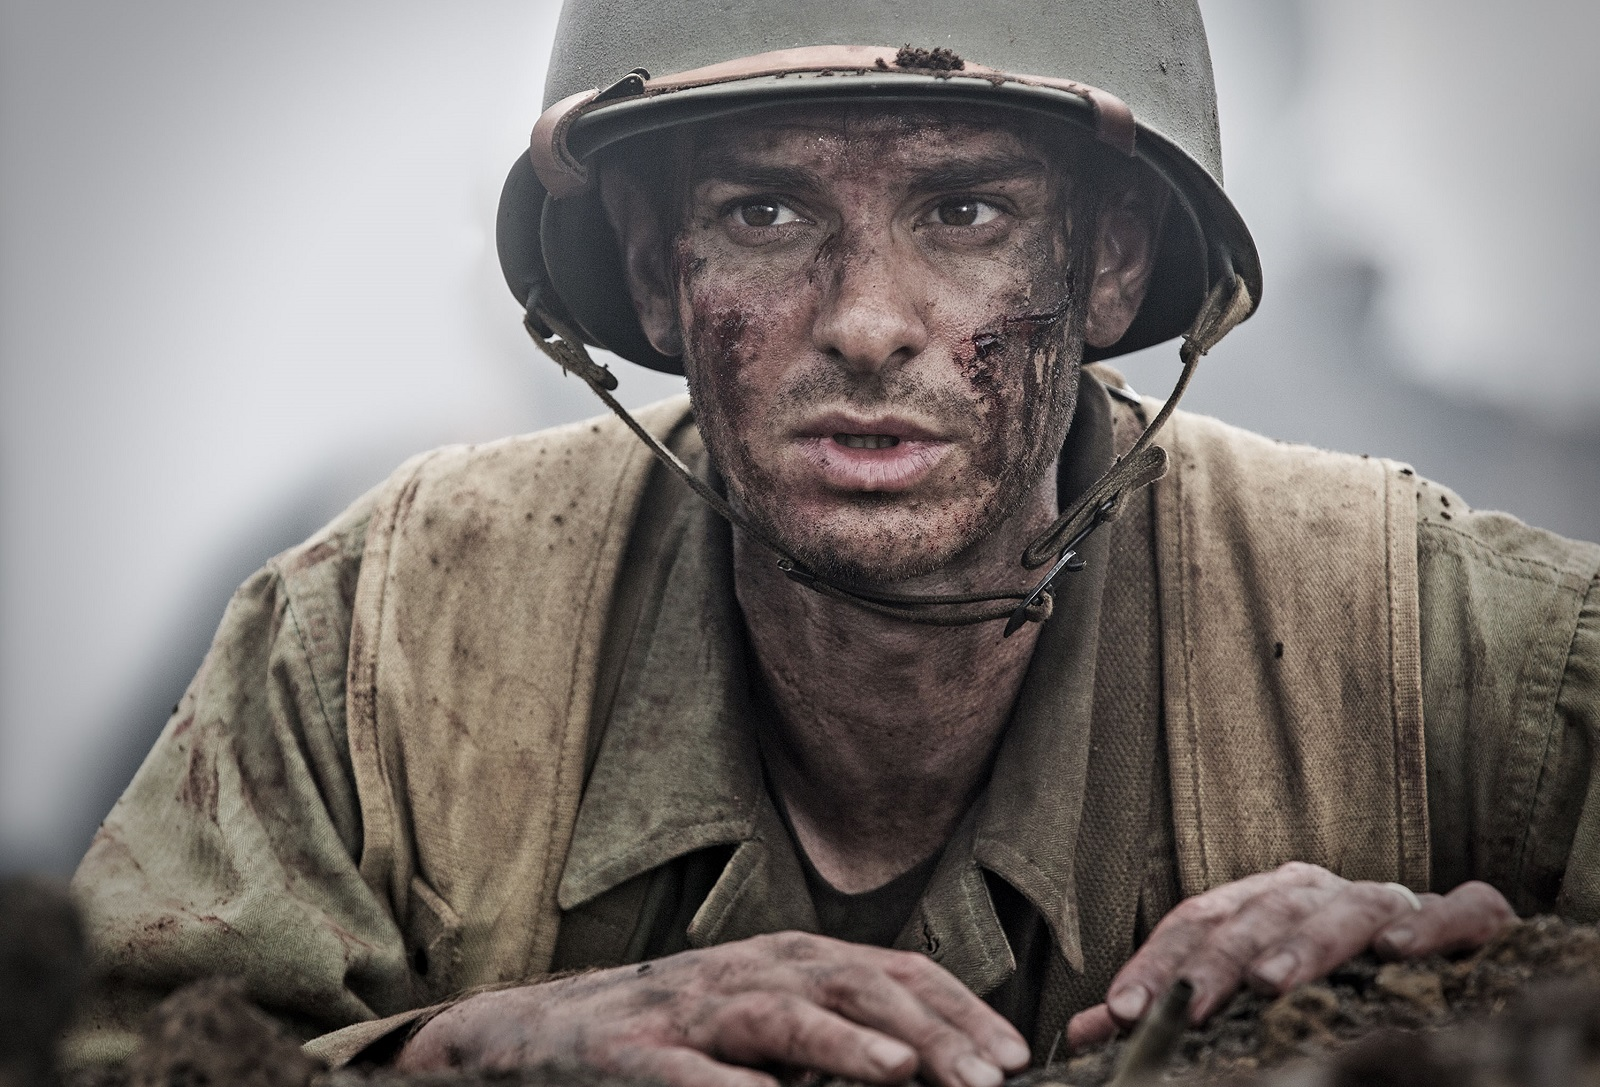 Andrew Garfield as Desmond Doss in a scene from the movie 'Hacksaw Ridge,' directed by Mel Gibson.